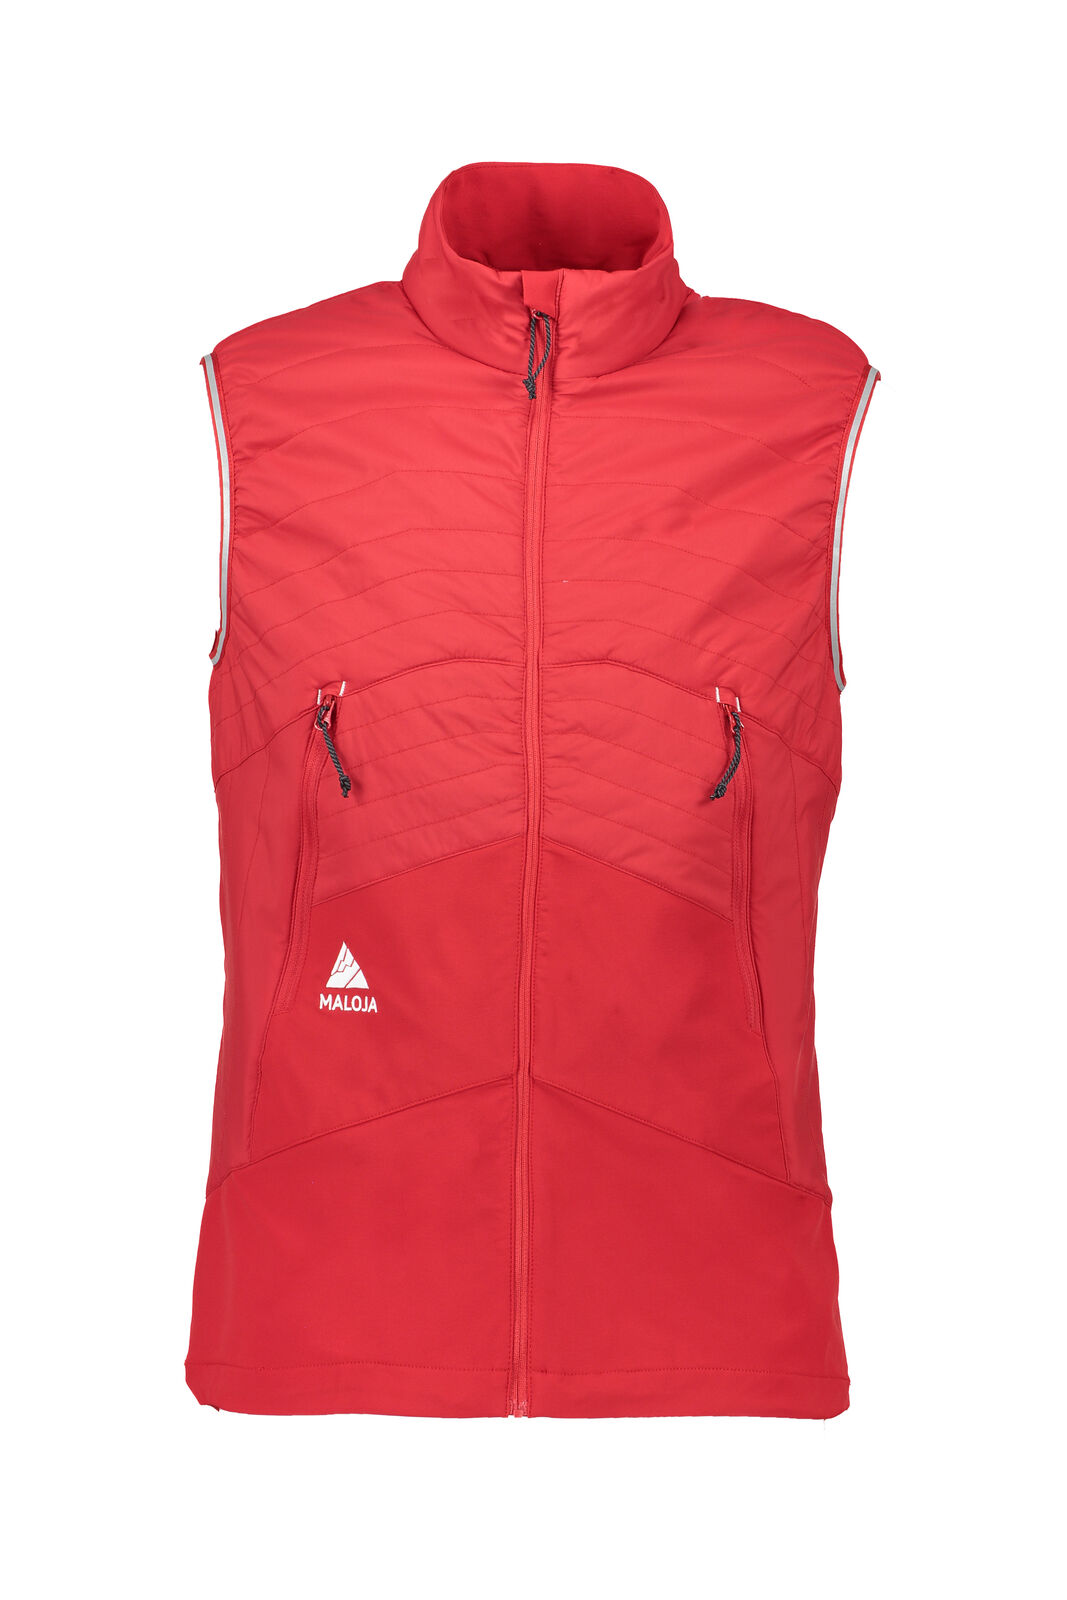 Maloja Cross-Country Vest Functional Vest Bodywarmer Red Falunm. Primaloft